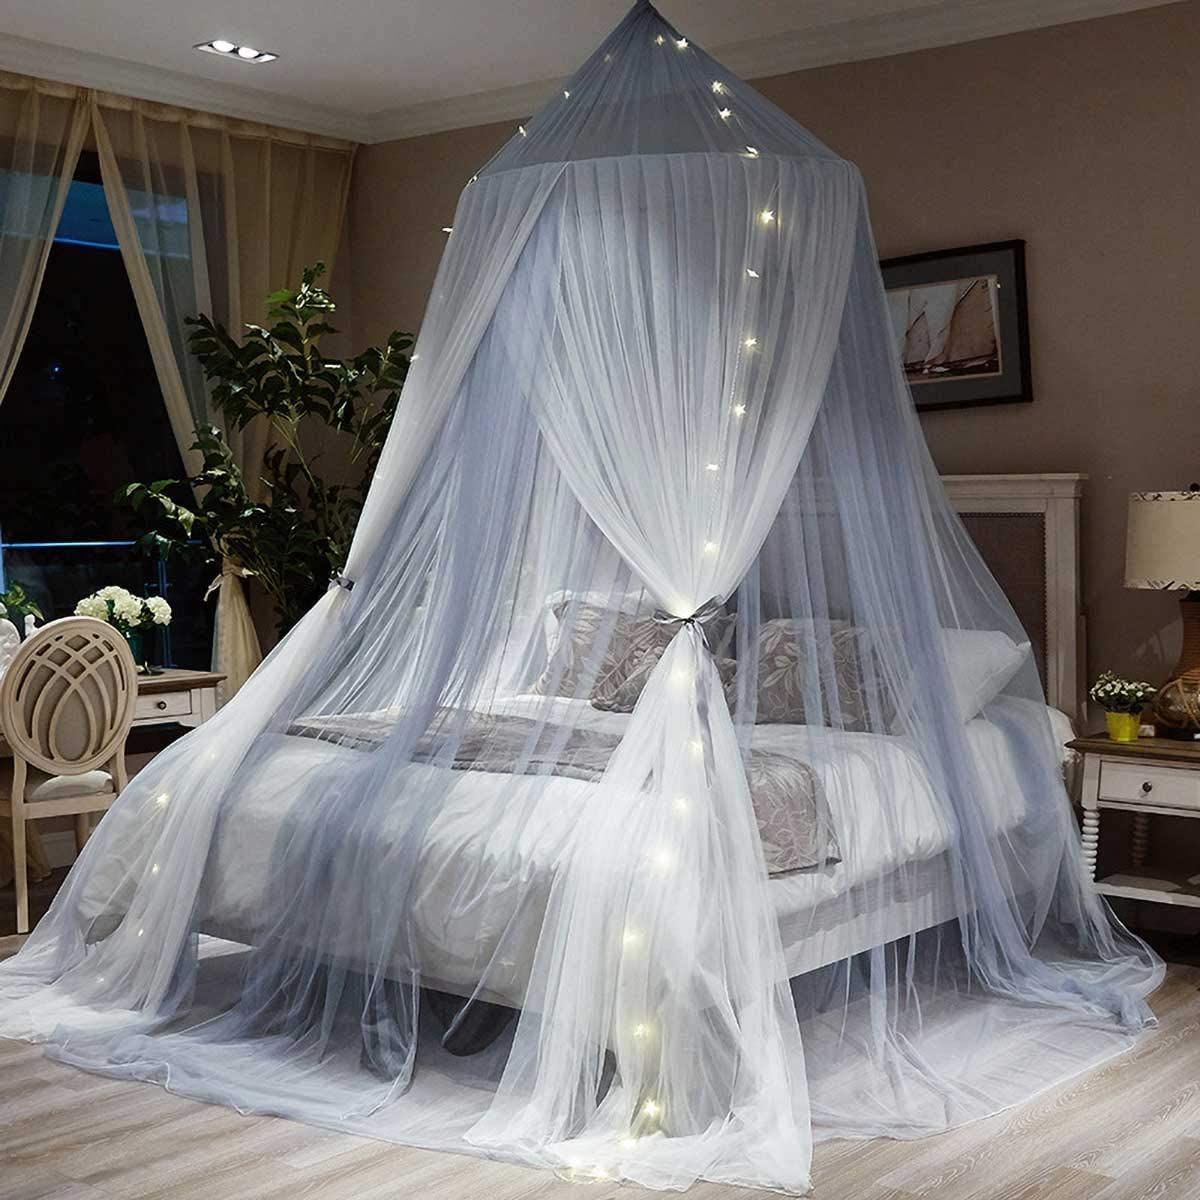 Romantic Princess Mosquito Net in 2020 Bed canopy with